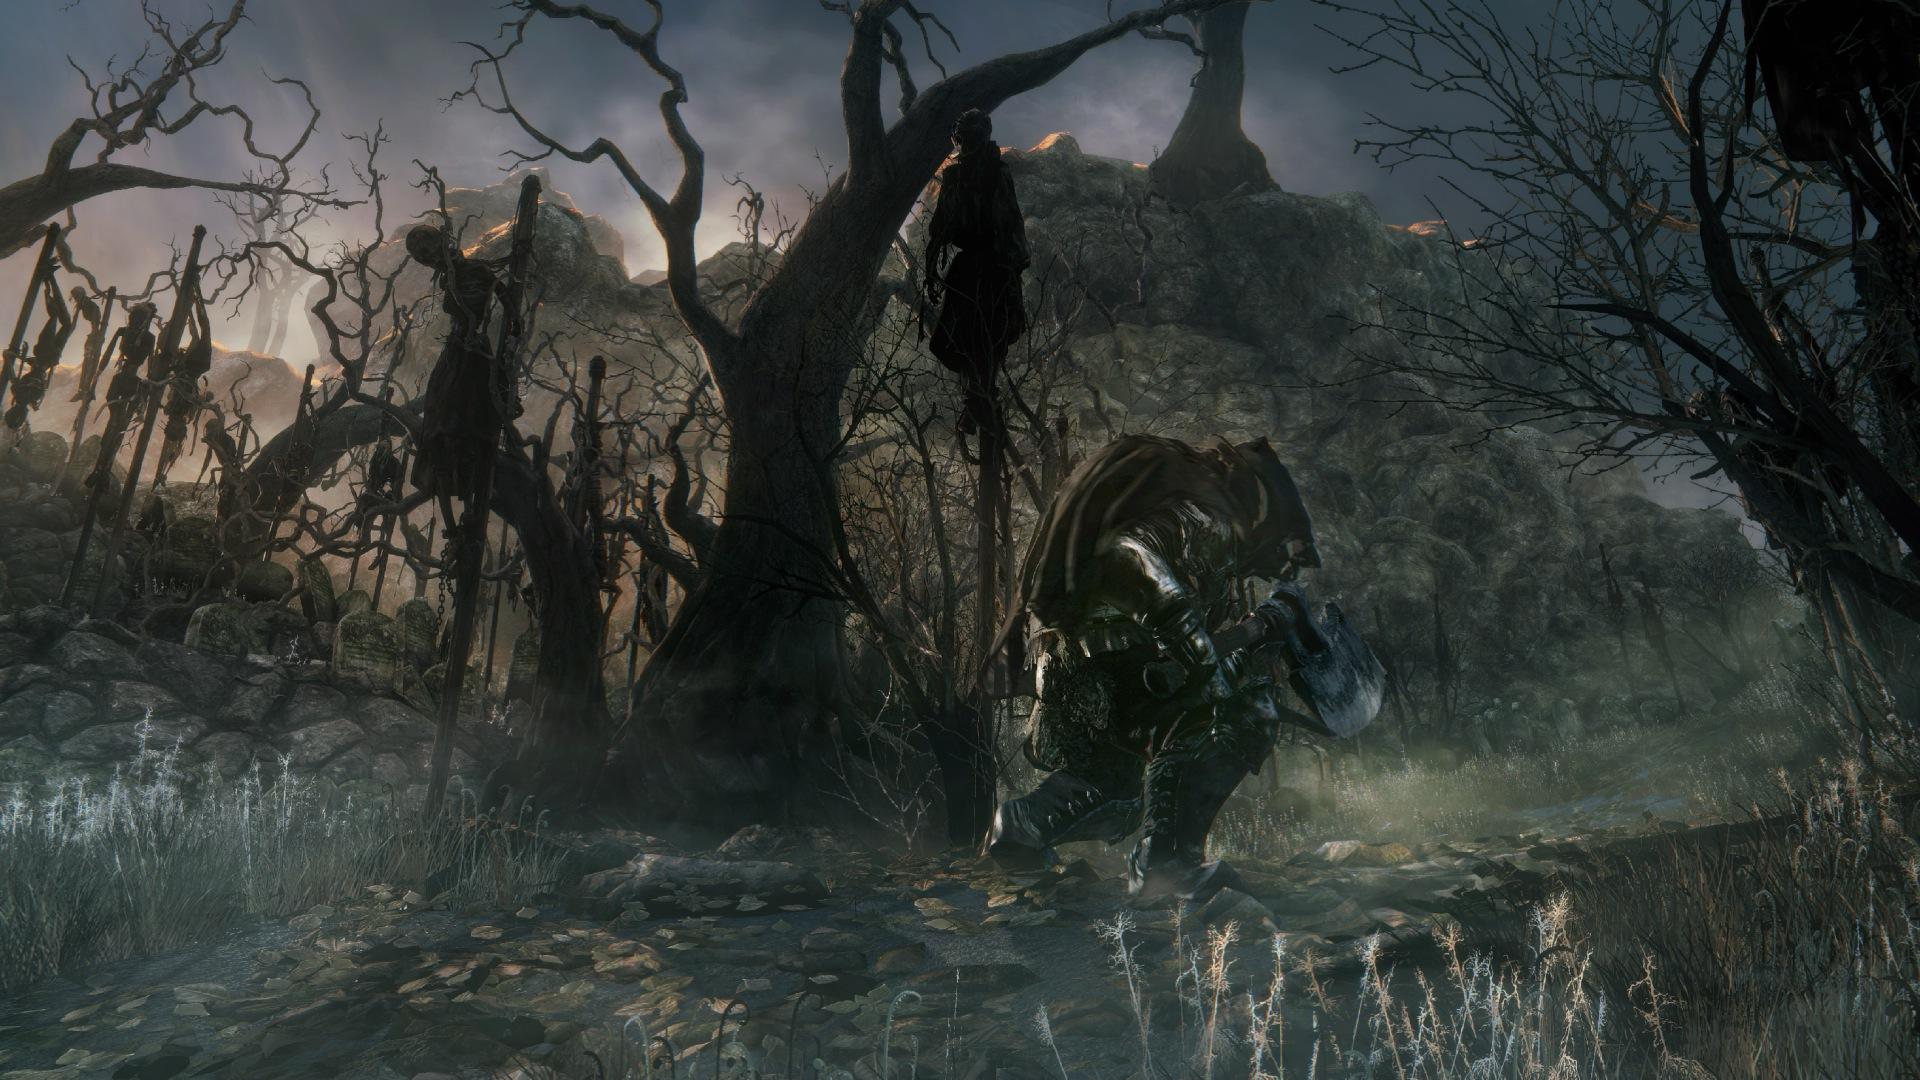 Bloodborne Beaten in 44 Minutes, But With Some Exploits